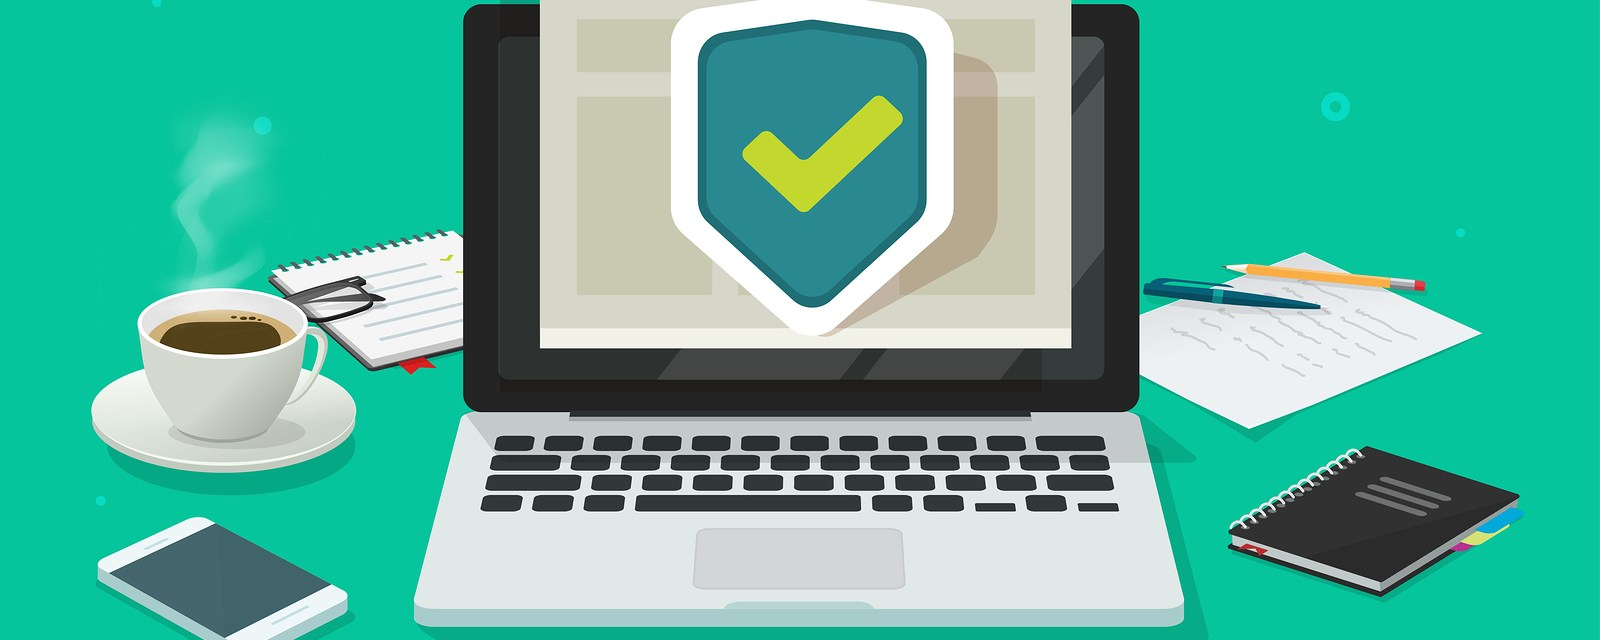 What is Web browser security